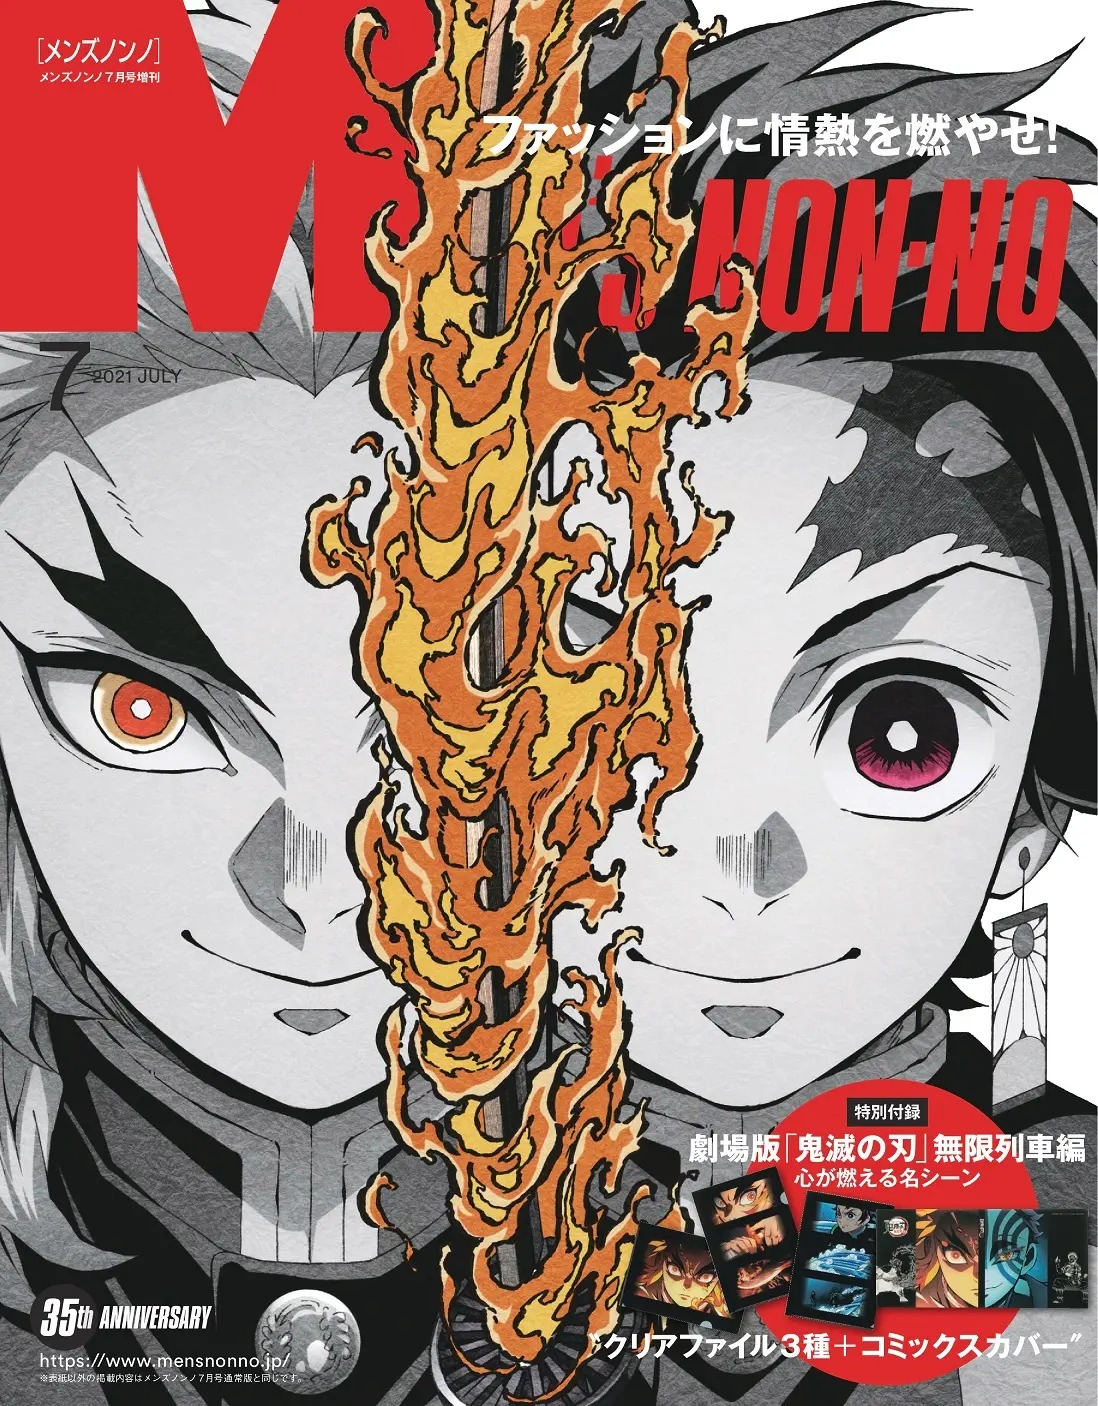 """""""Demon Slayer The Movie – Mugen Train"""" 4 Fashion & Beauty Magazines designed Original cover or supplement for Demon Slayer are released by SHUEISHA._3"""